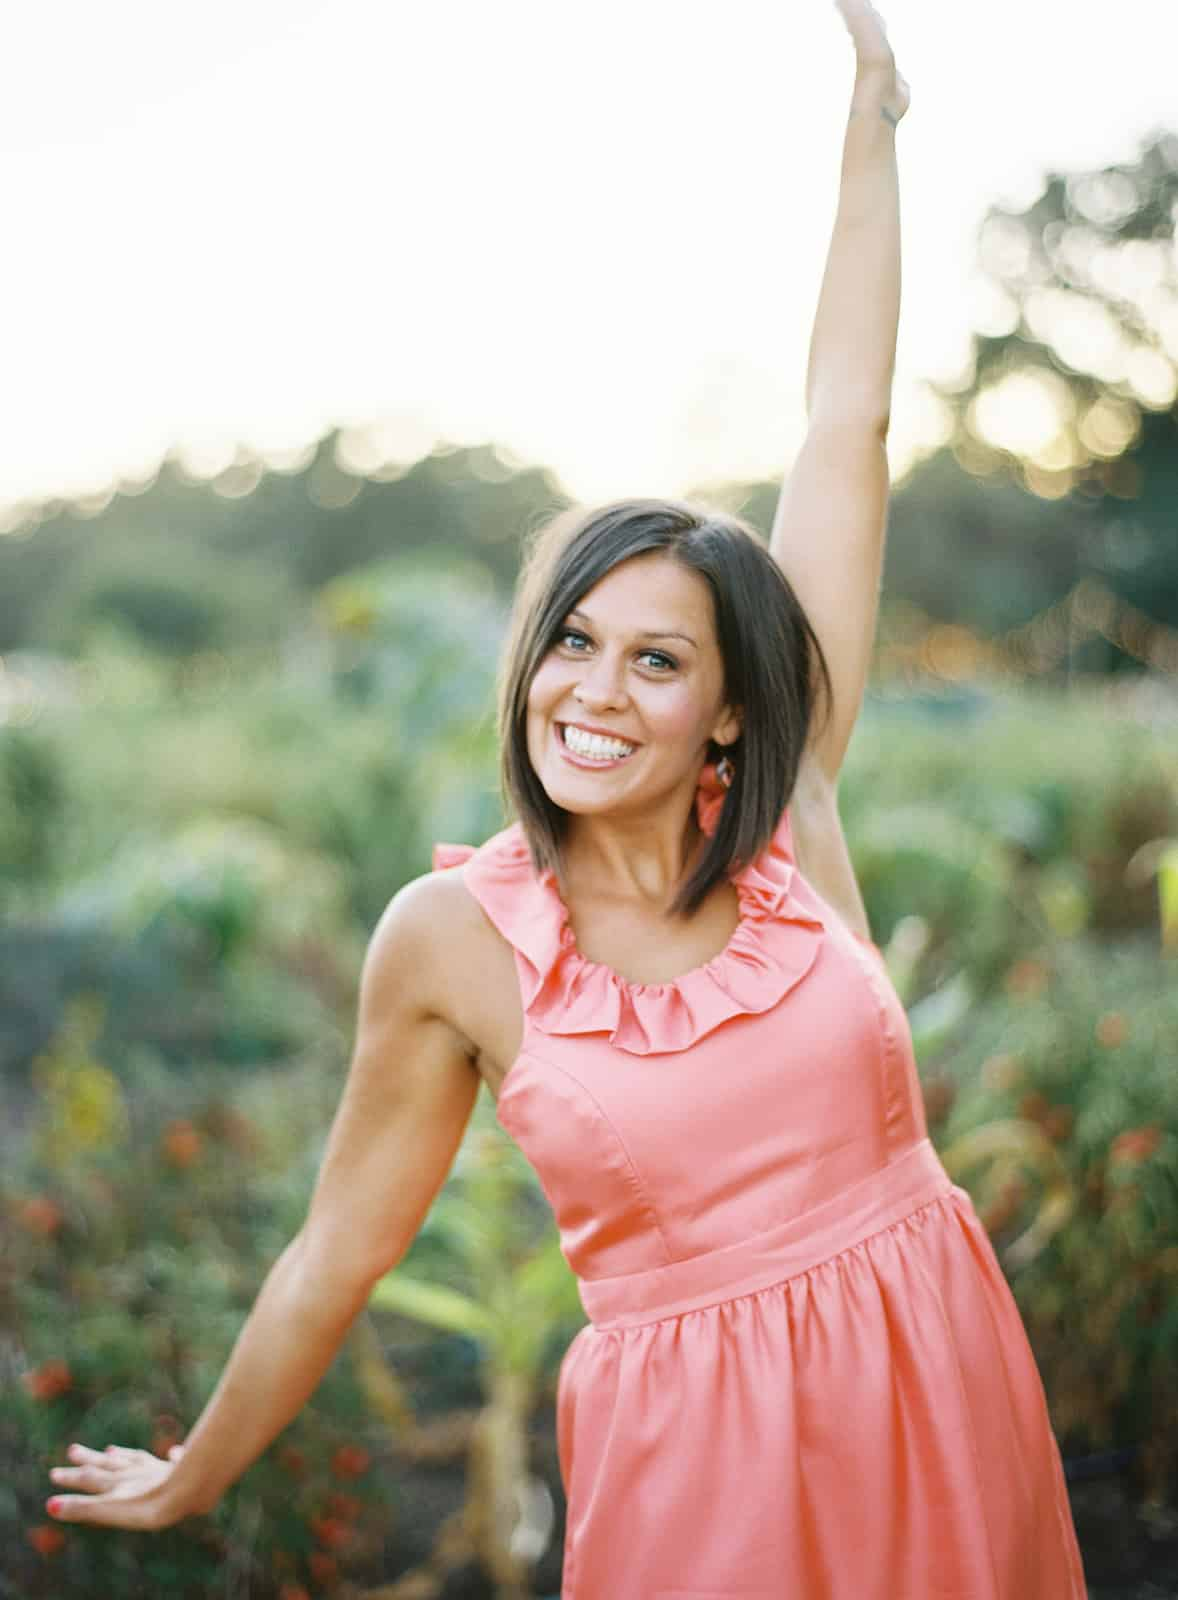 Bridesmaid waving arms